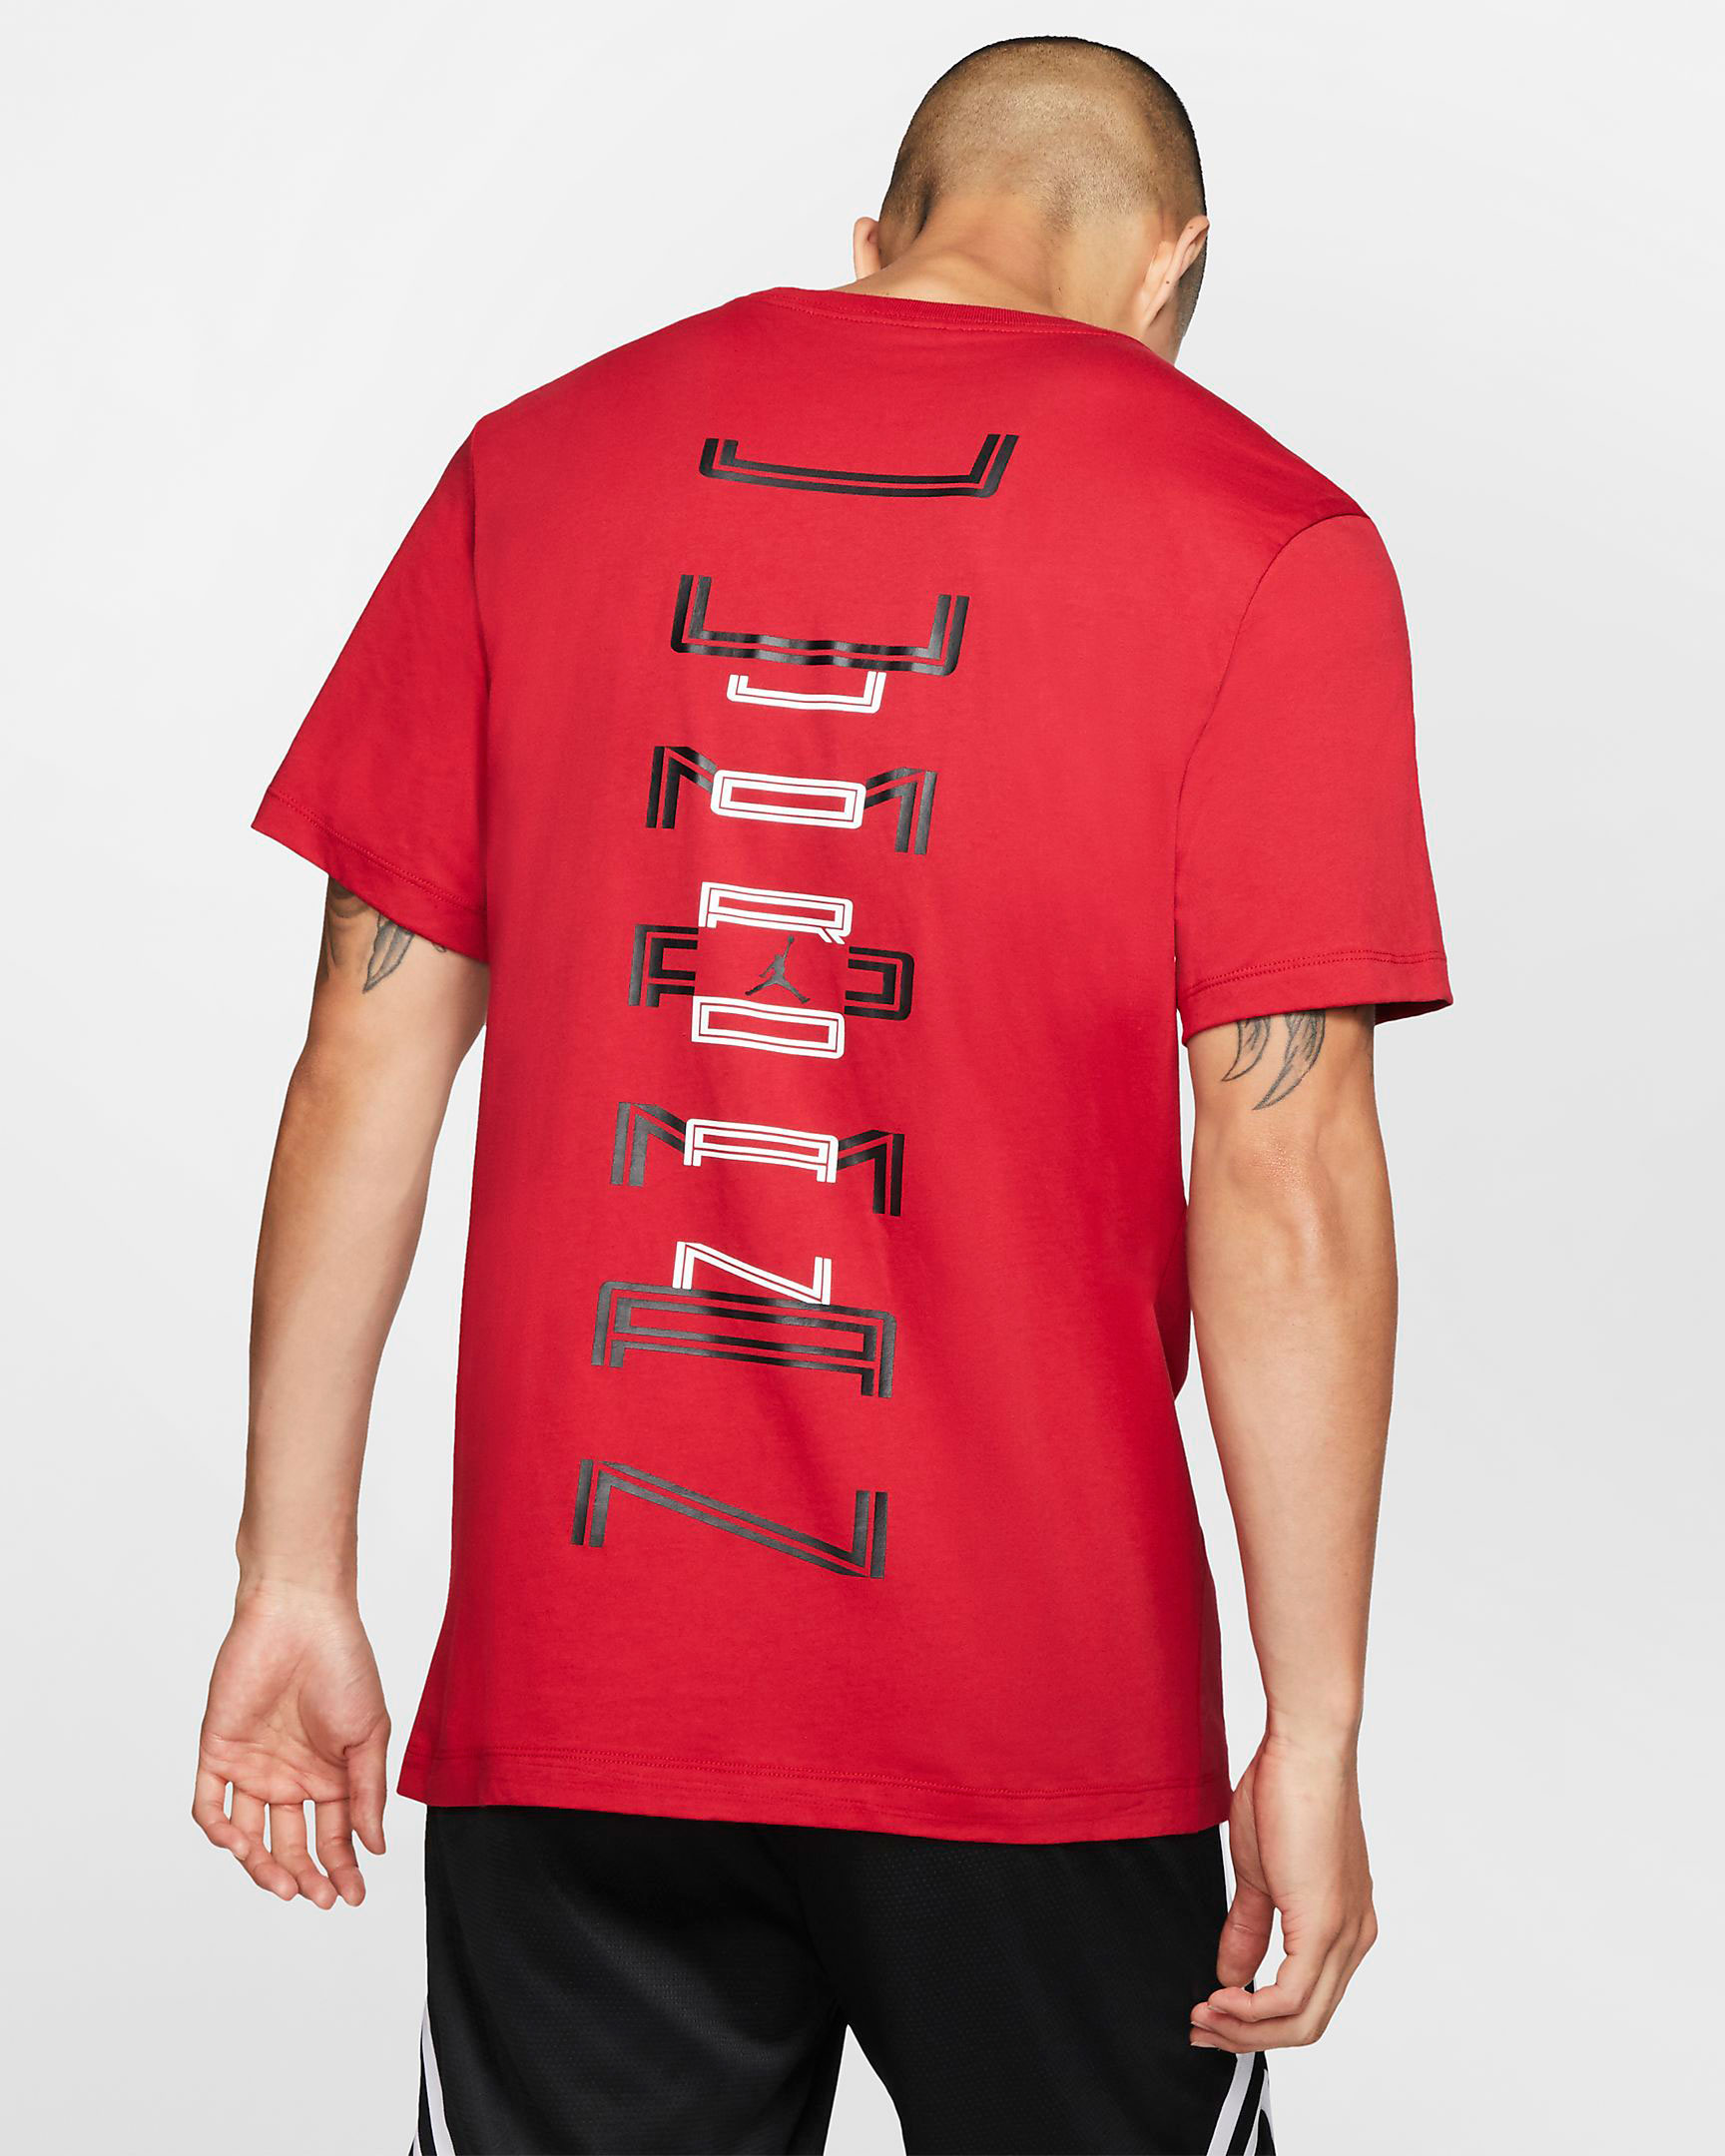 air-jordan-11-bred-2019-tee-shirt-2